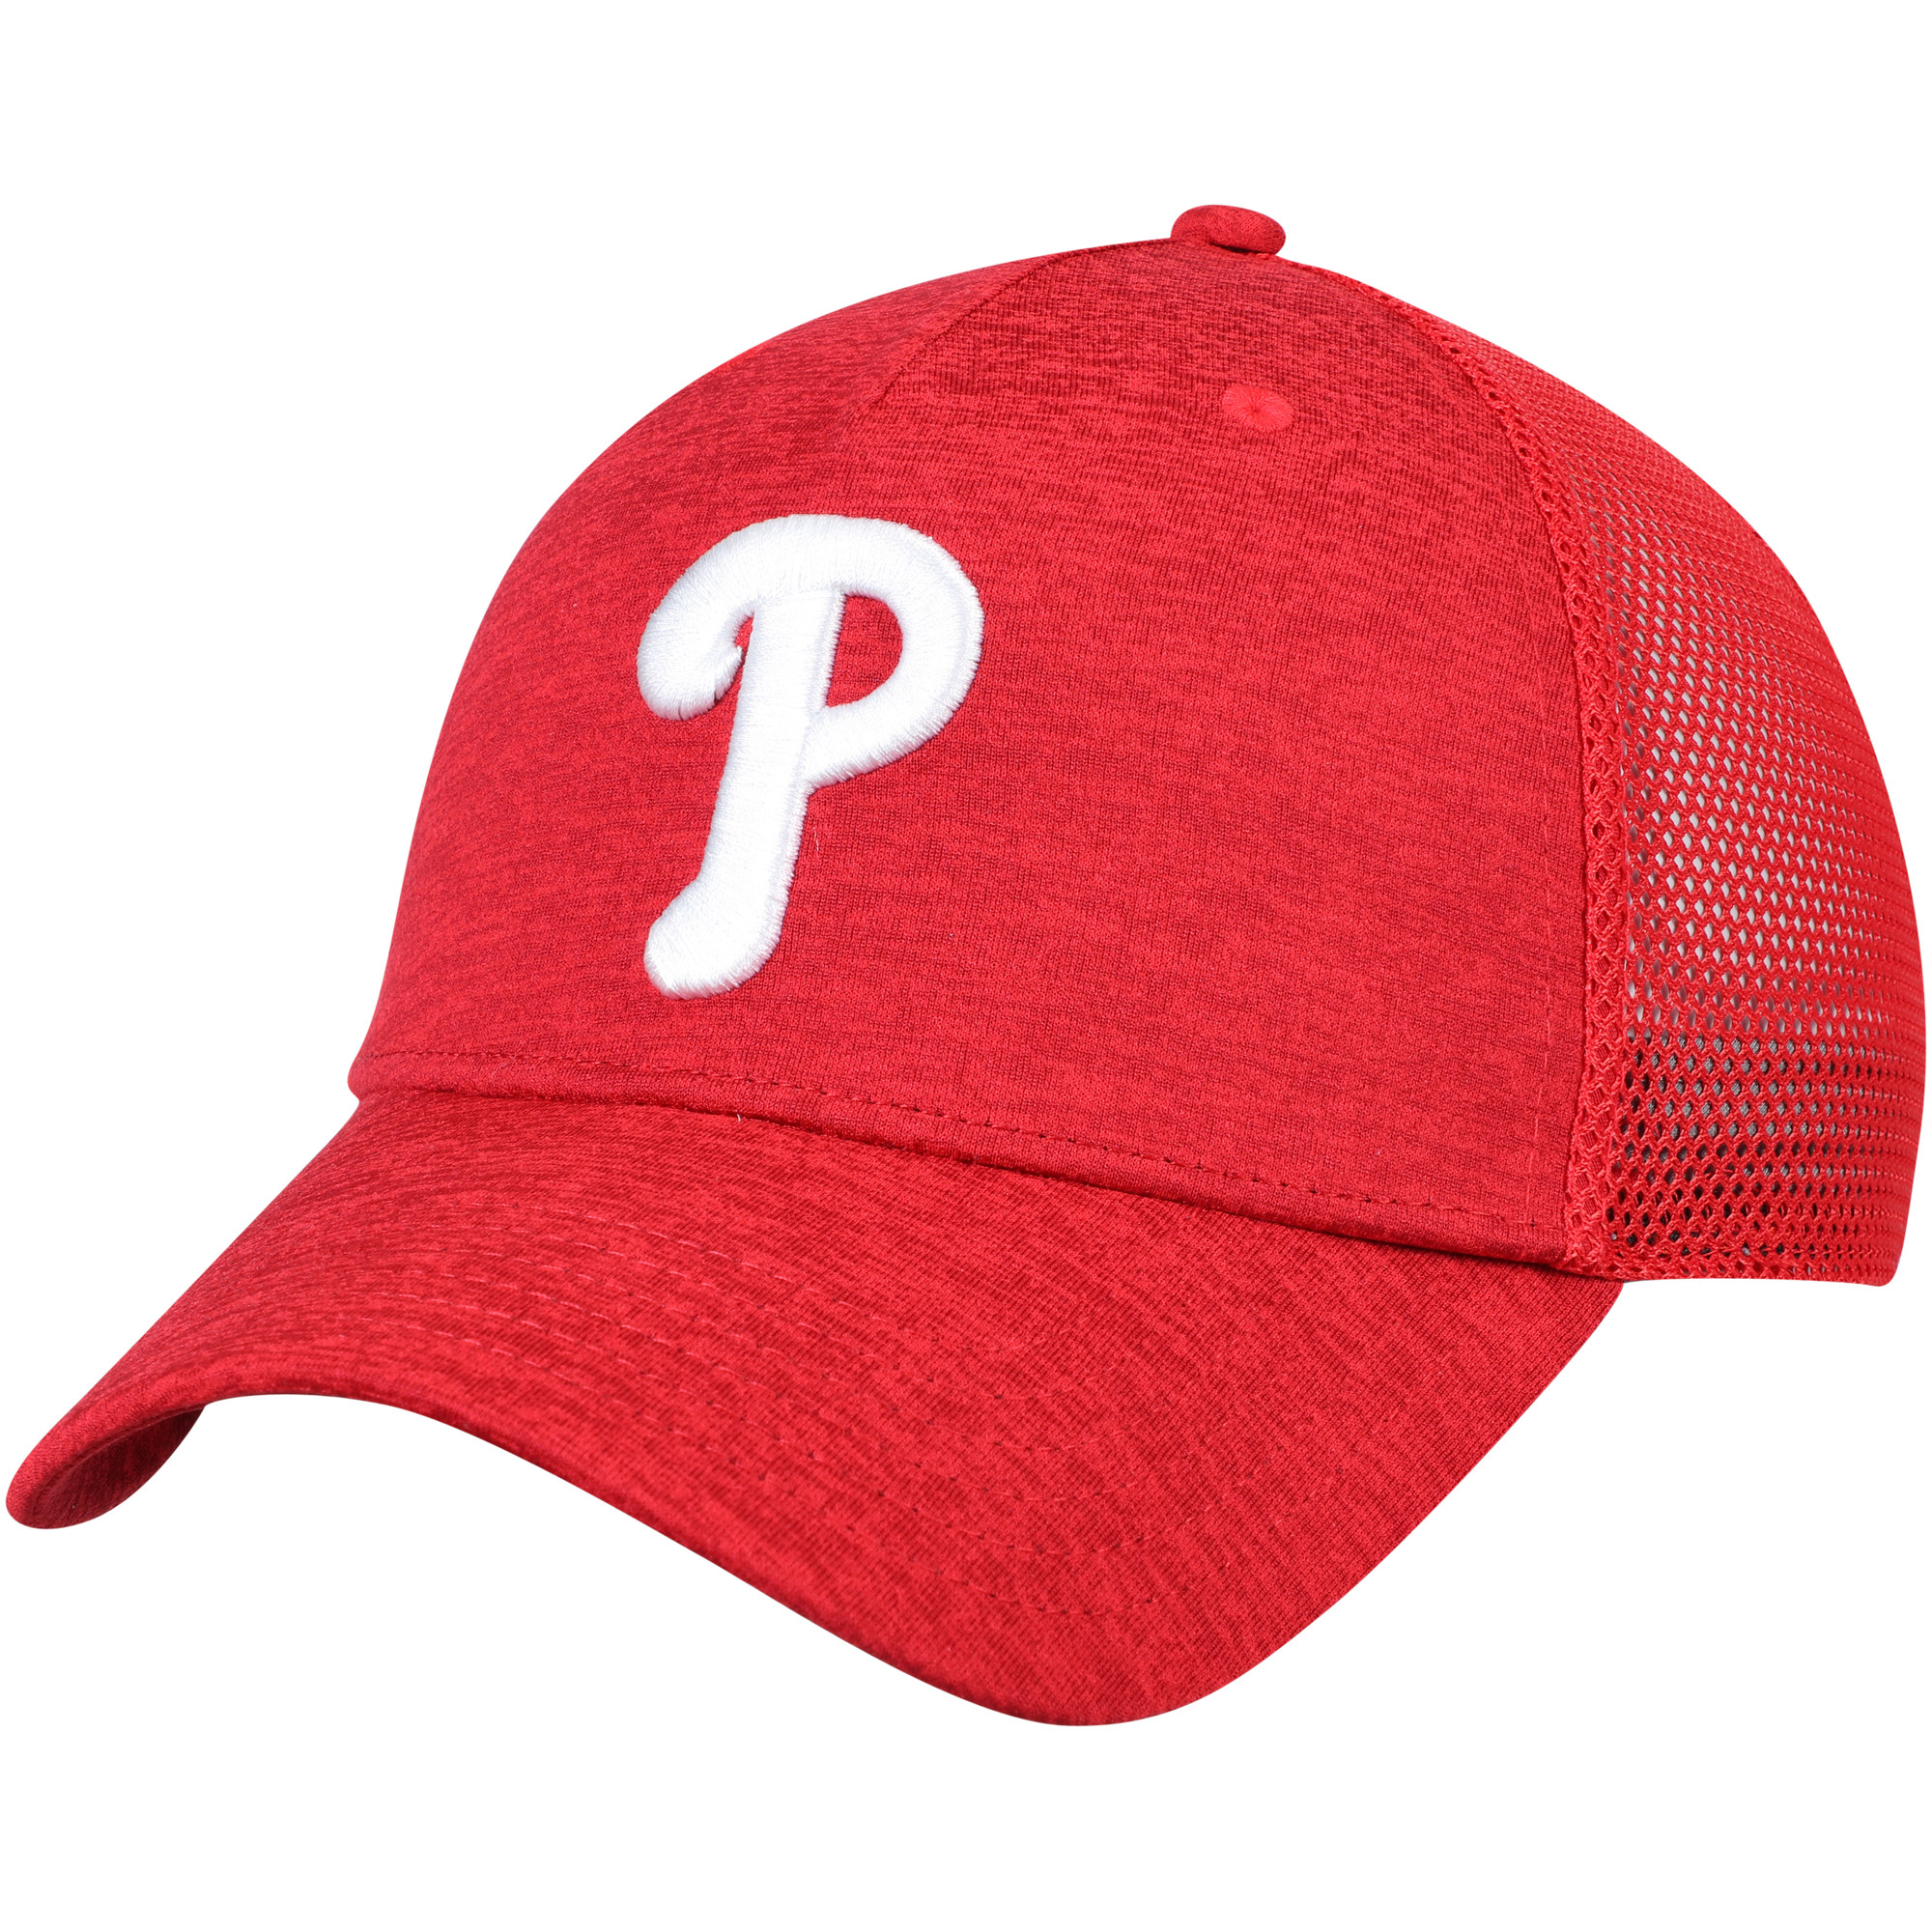 Philadelphia Phillies Under Armour Twist Closer Trucker Performance Adjustable Hat - Red - OSFA